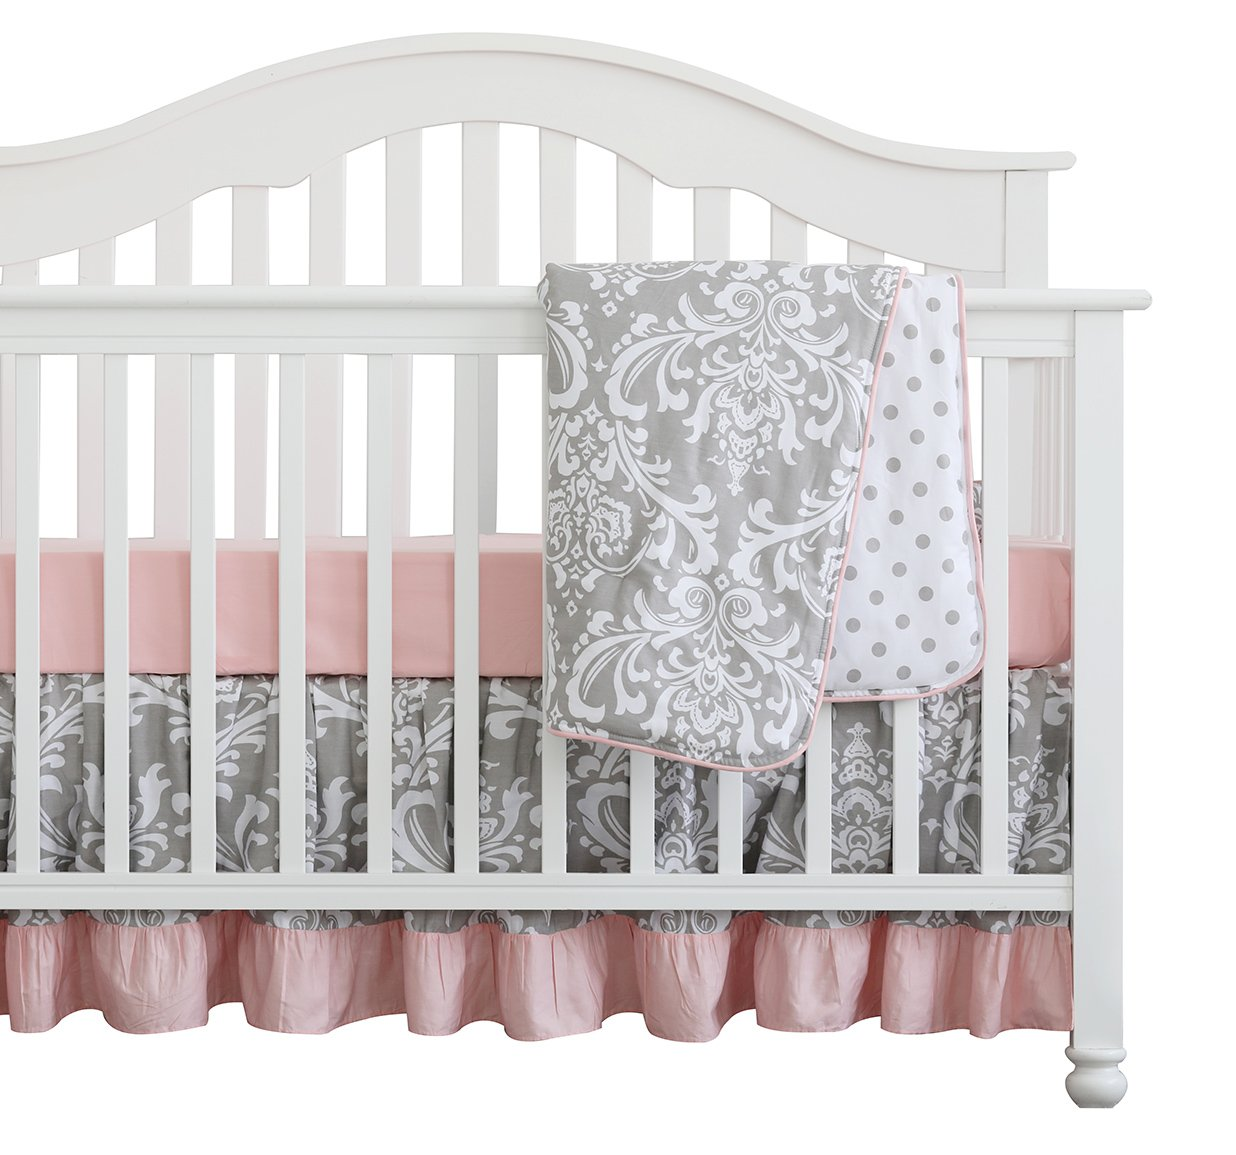 3 pcs set Boho Floral Ruffle Baby Blanket Baby Nursery Crib Skirt Set Baby Girl Crib Bedding (Grey Pink)